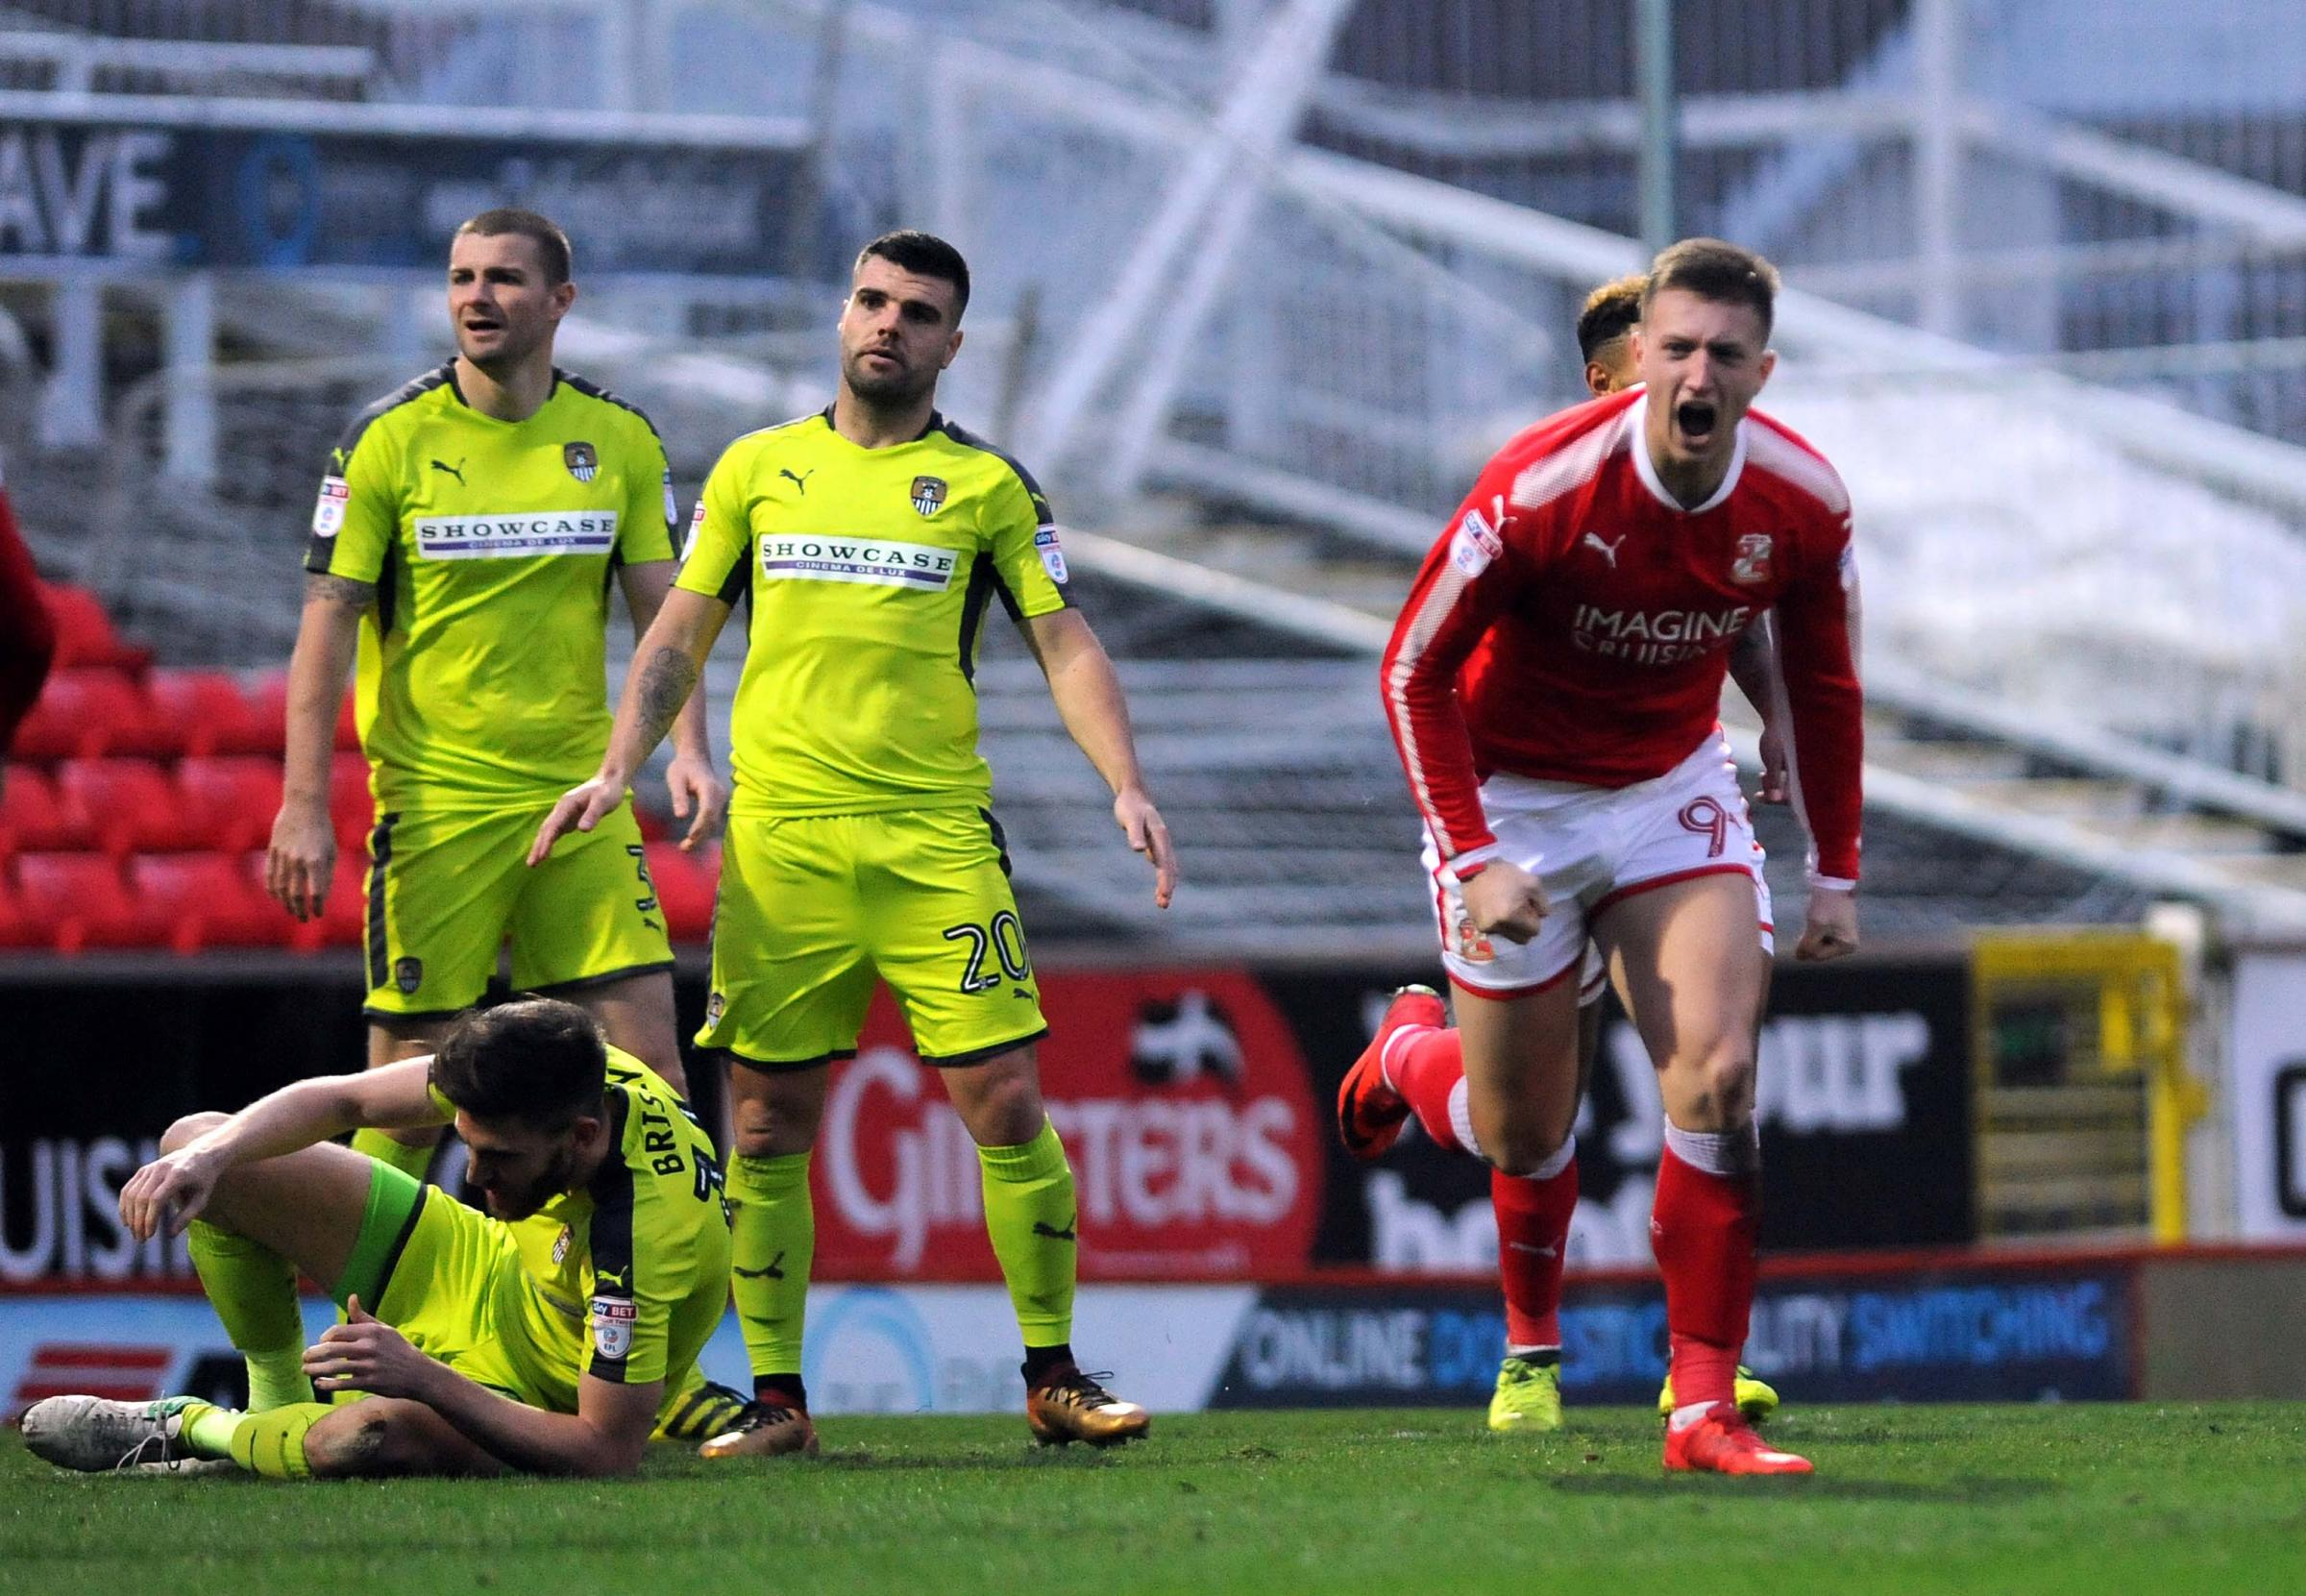 Luke Norris roars with delight after netting Swindon Town's winner against Notts County. PICTURE: DAVE EVANS